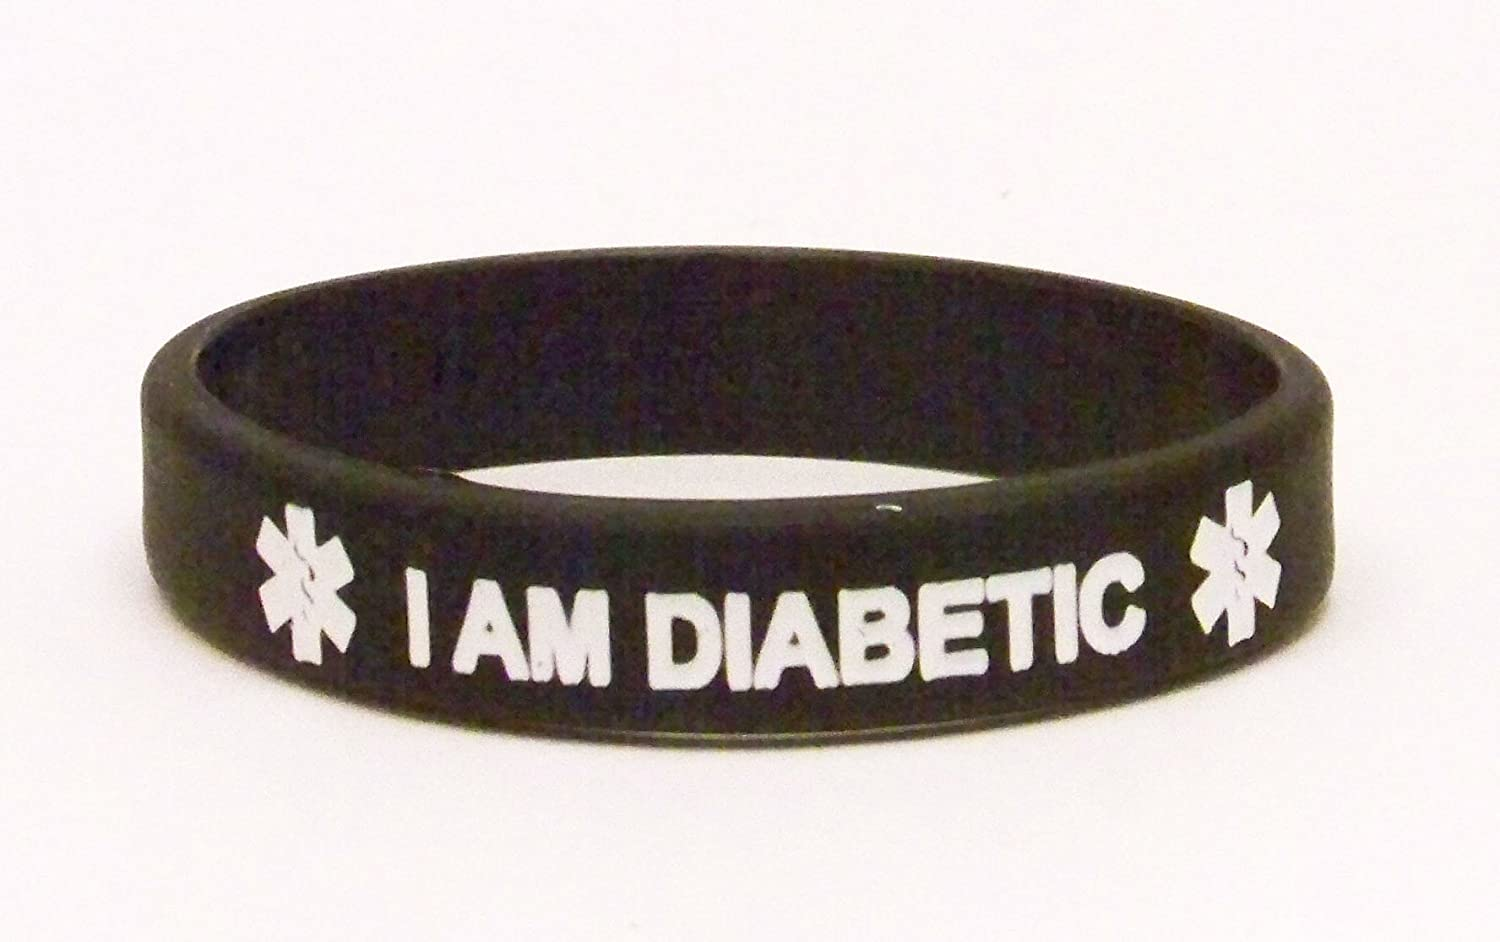 Amazon: Silicone Diabetic Medical Id Bracelet, Black, Toddler Size:  Identification Bracelets: Jewelry